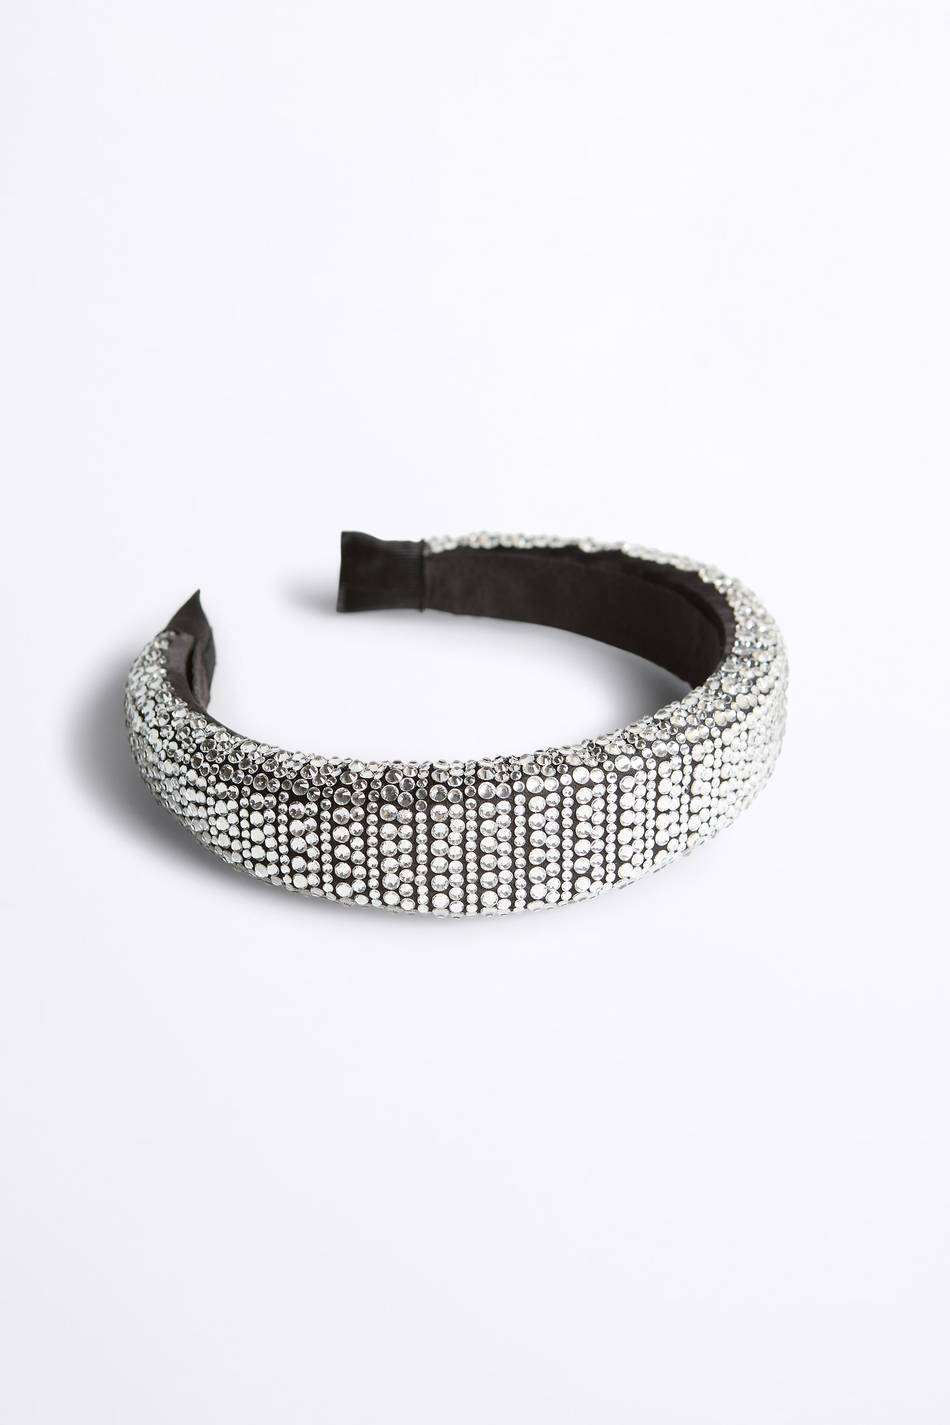 Gina Tricot Denise strass diadem Female Silver